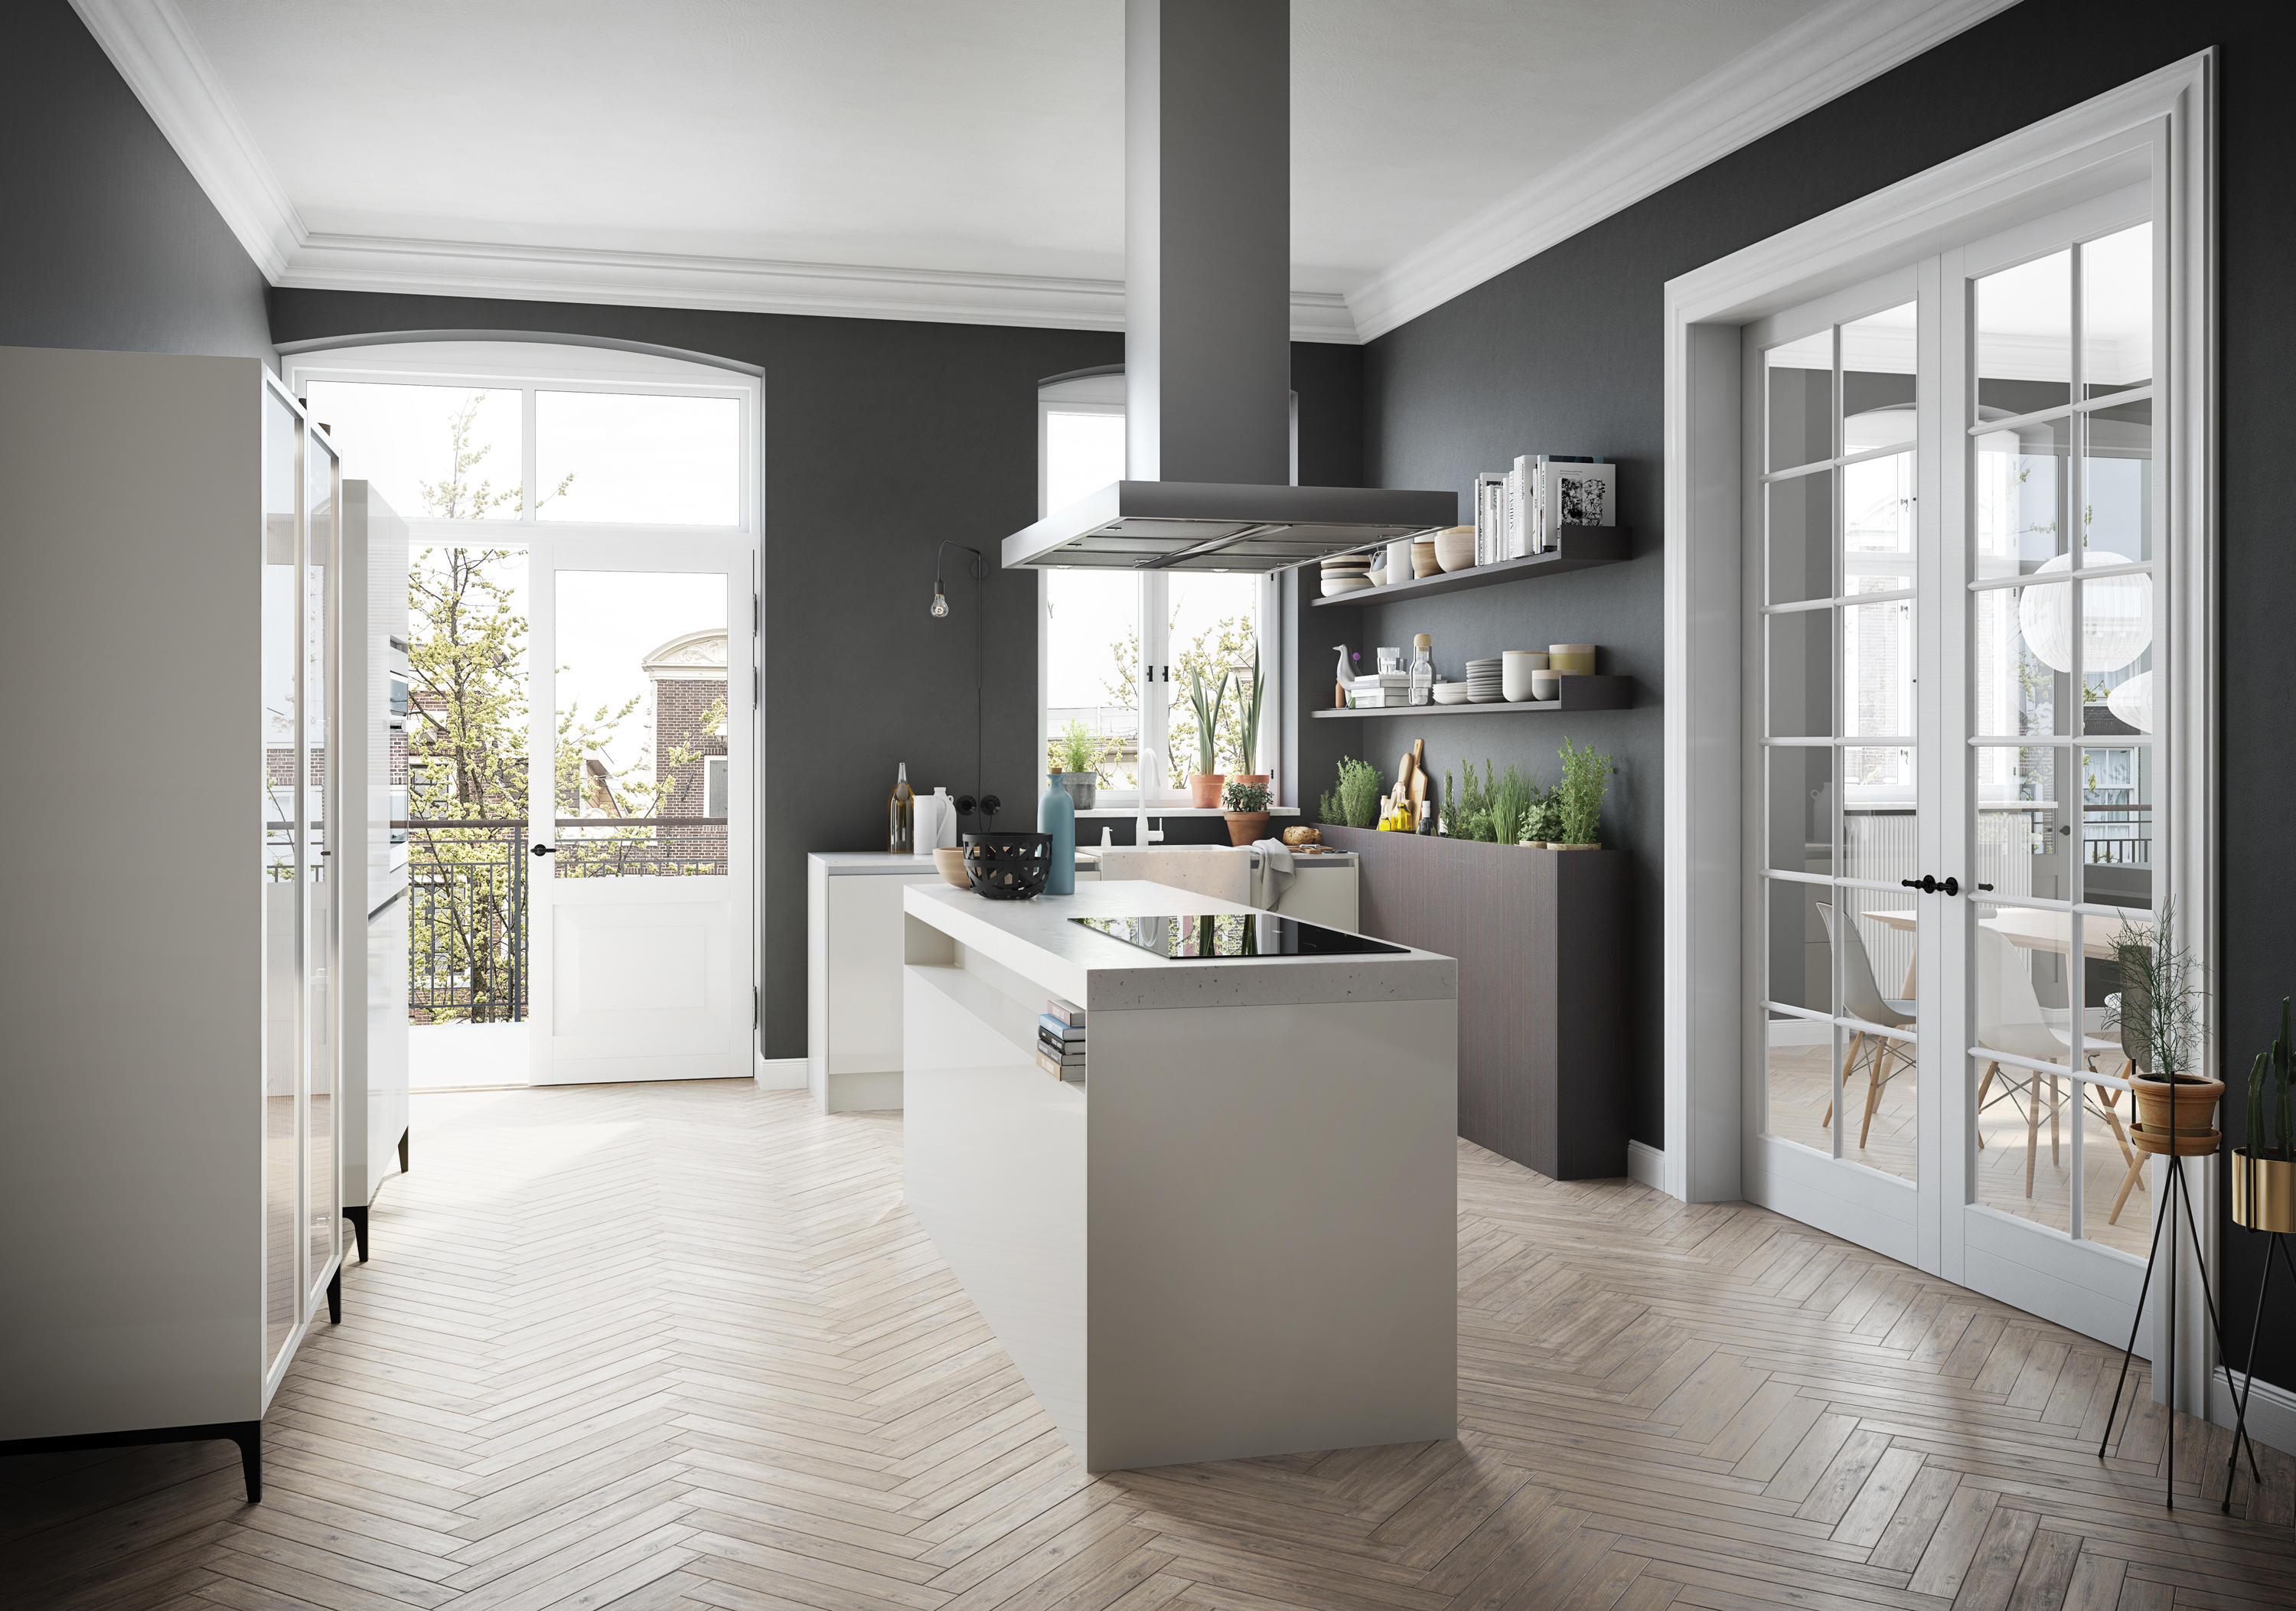 siematic se fitted kitchens from siematic architonic. Black Bedroom Furniture Sets. Home Design Ideas